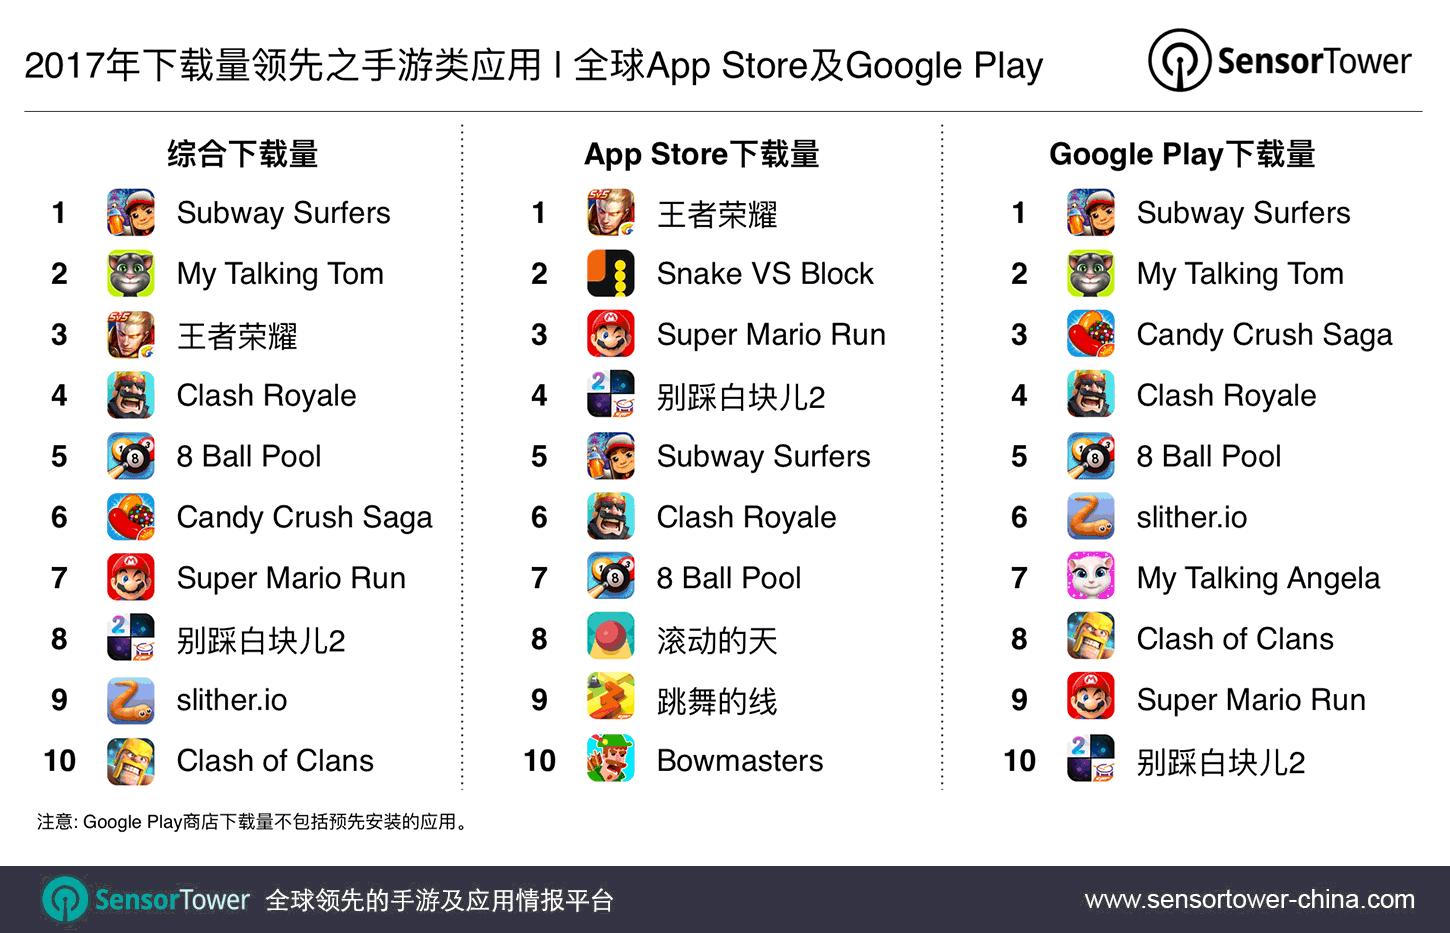 2017's Top Mobile Games by Downloads CN